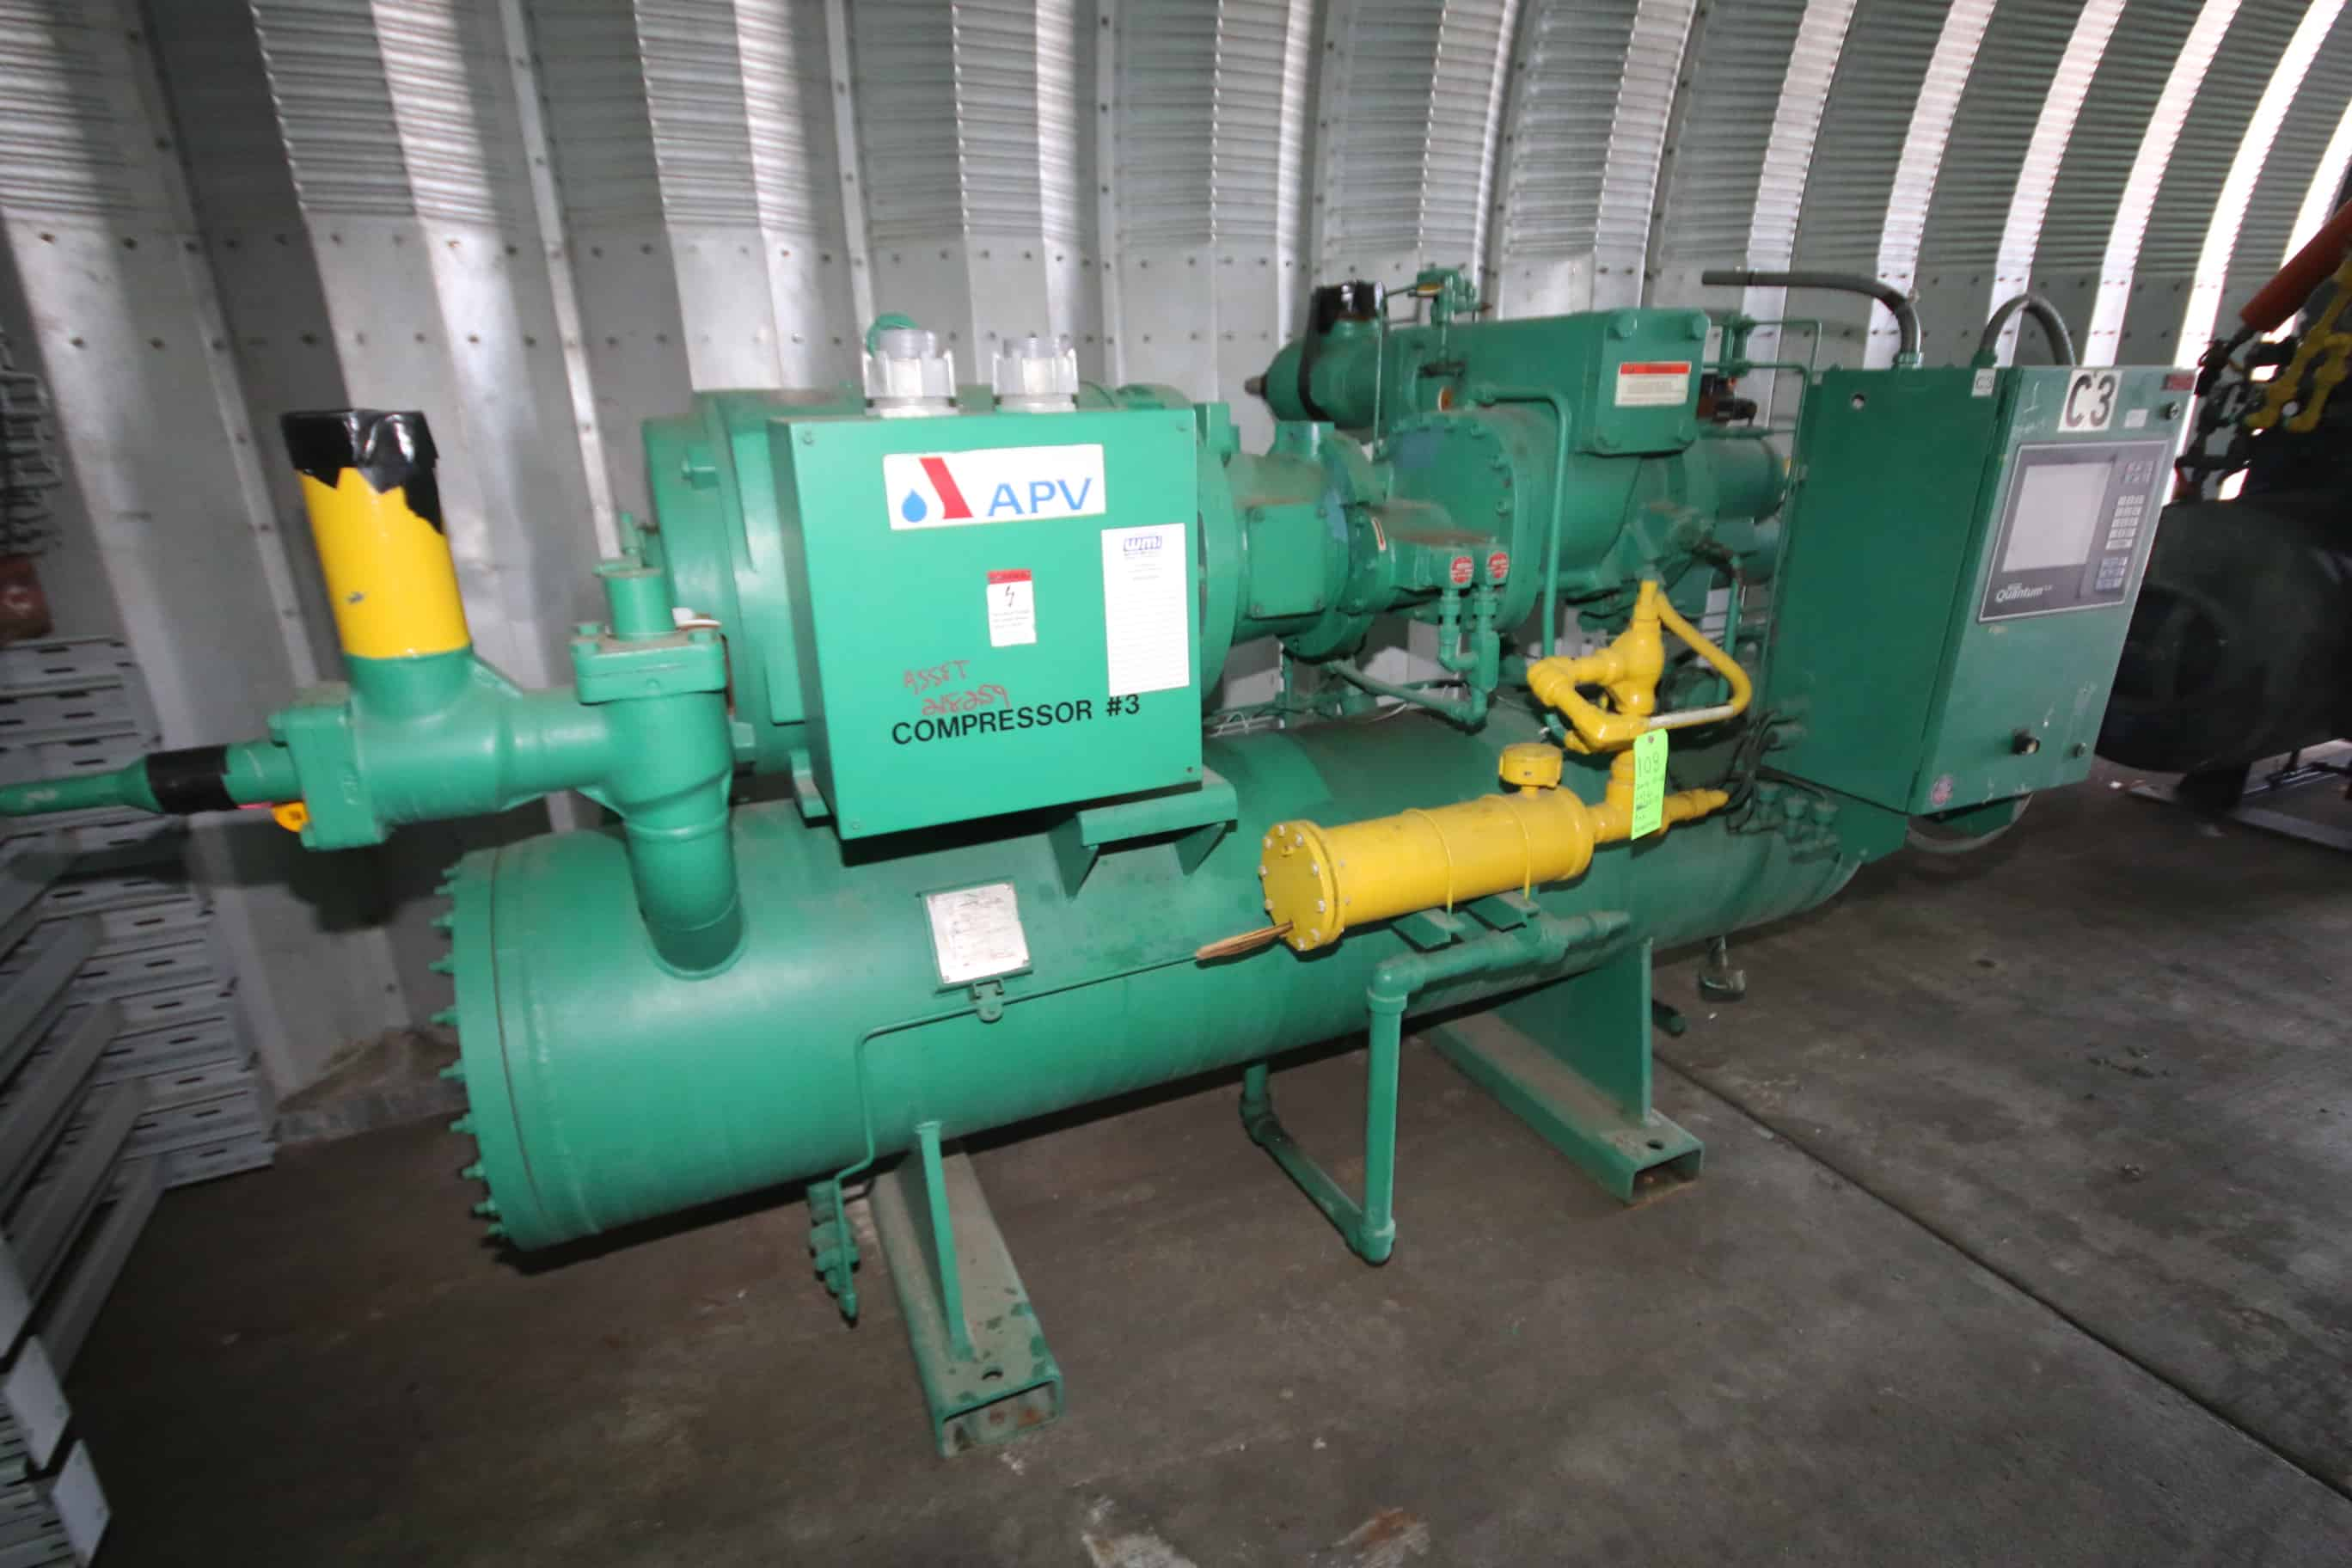 "2000 Frick 263 hp Screw Ammonia Compressor, Model RXF101H, S/N 0224UFMNLHAA03, Frick Sales #21290401000 with 300 psig, Ram 3560 RPM Motor, 460 V, 3 Phase, Frick Quantum LX Touchpad Display and Control Panel (Overall Dimensions Aprox. 10 ft. L x 67"" W x 72"" H)"